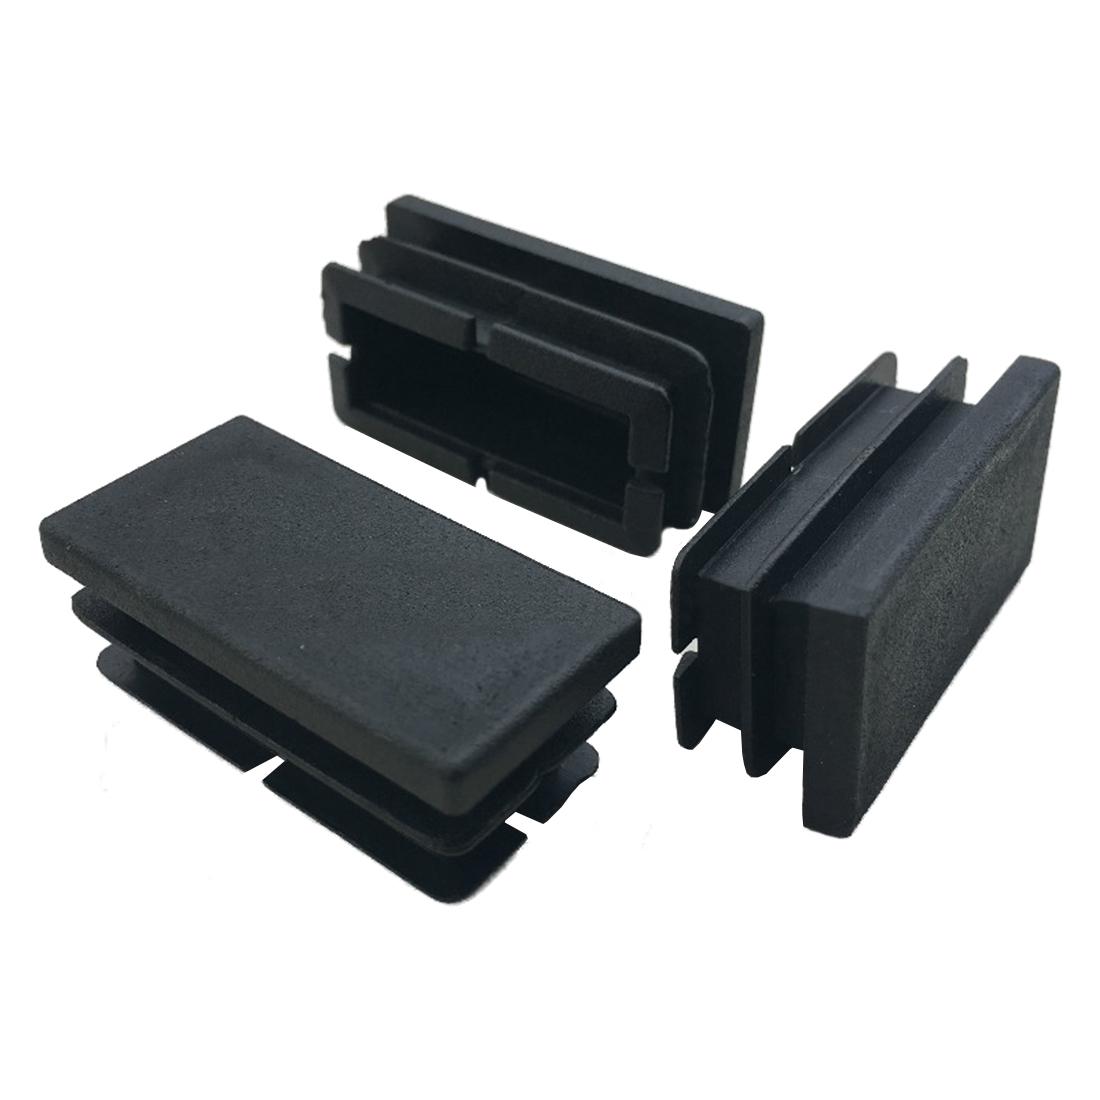 8 Pcs Black Plastic Rectangular Blanking End Caps Inserts 20mm x 40mm8 Pcs Black Plastic Rectangular Blanking End Caps Inserts 20mm x 40mm